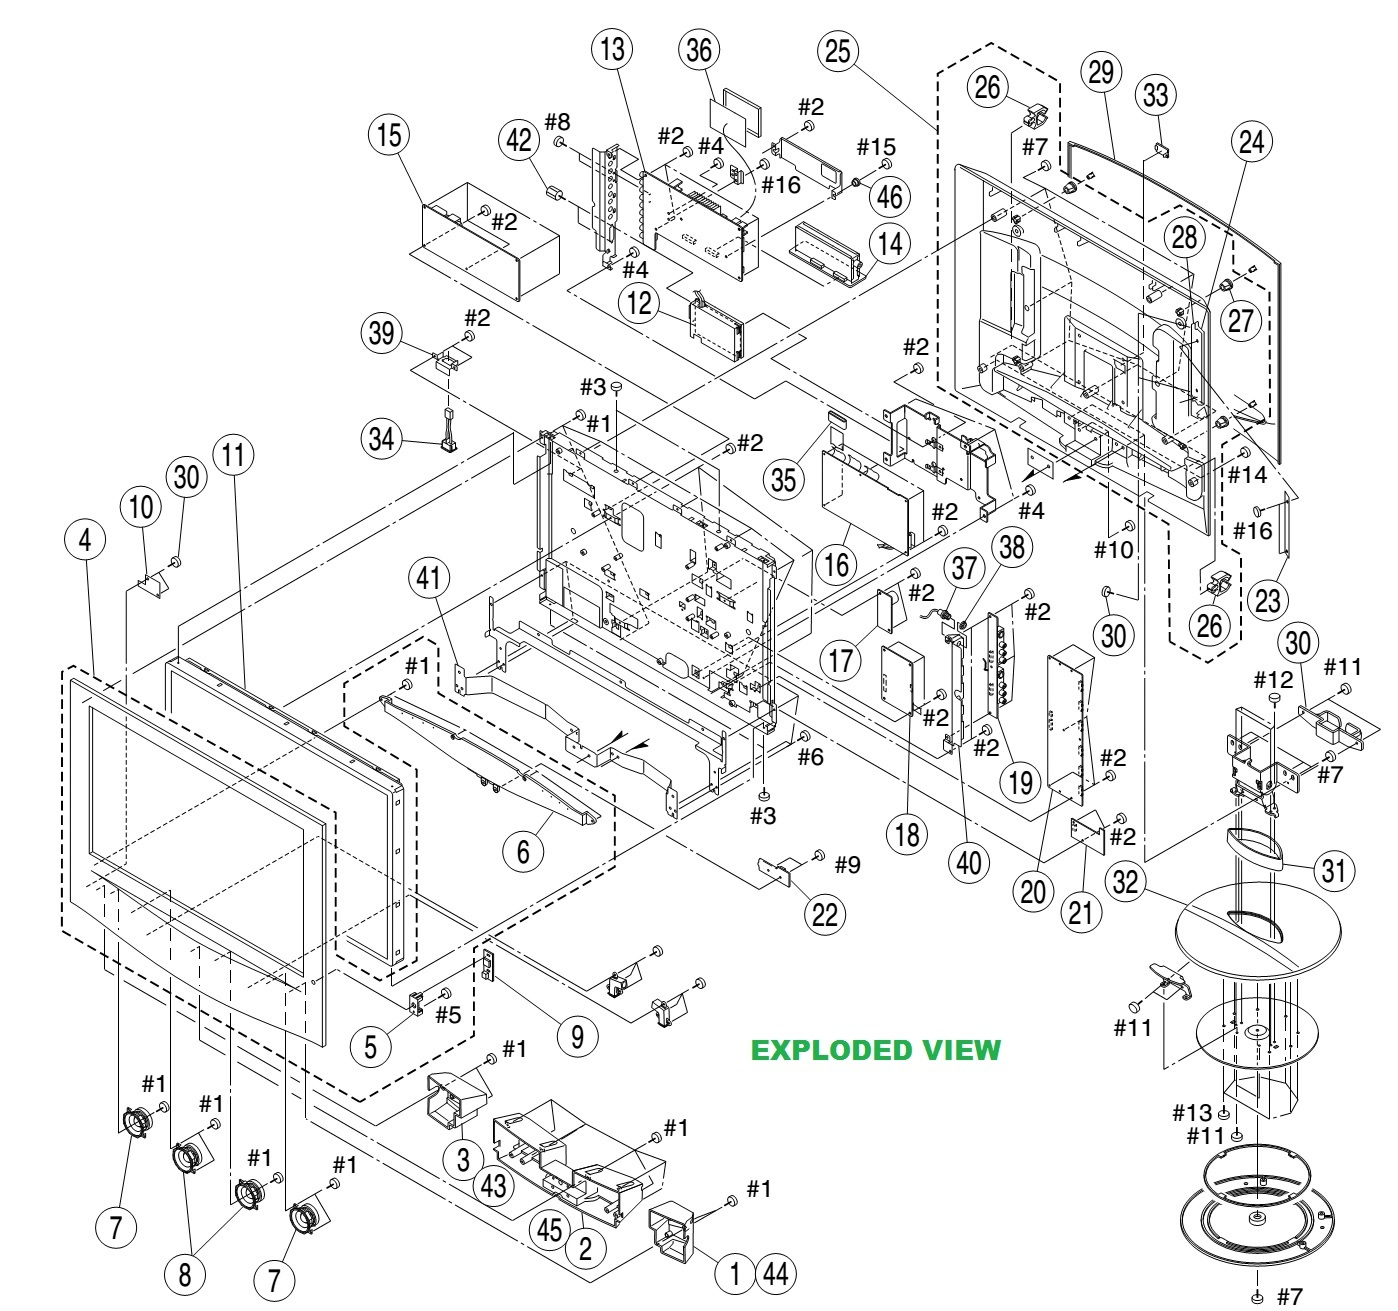 sony klv23hr2 lcd colour tv - smps and inverter circuit diagram